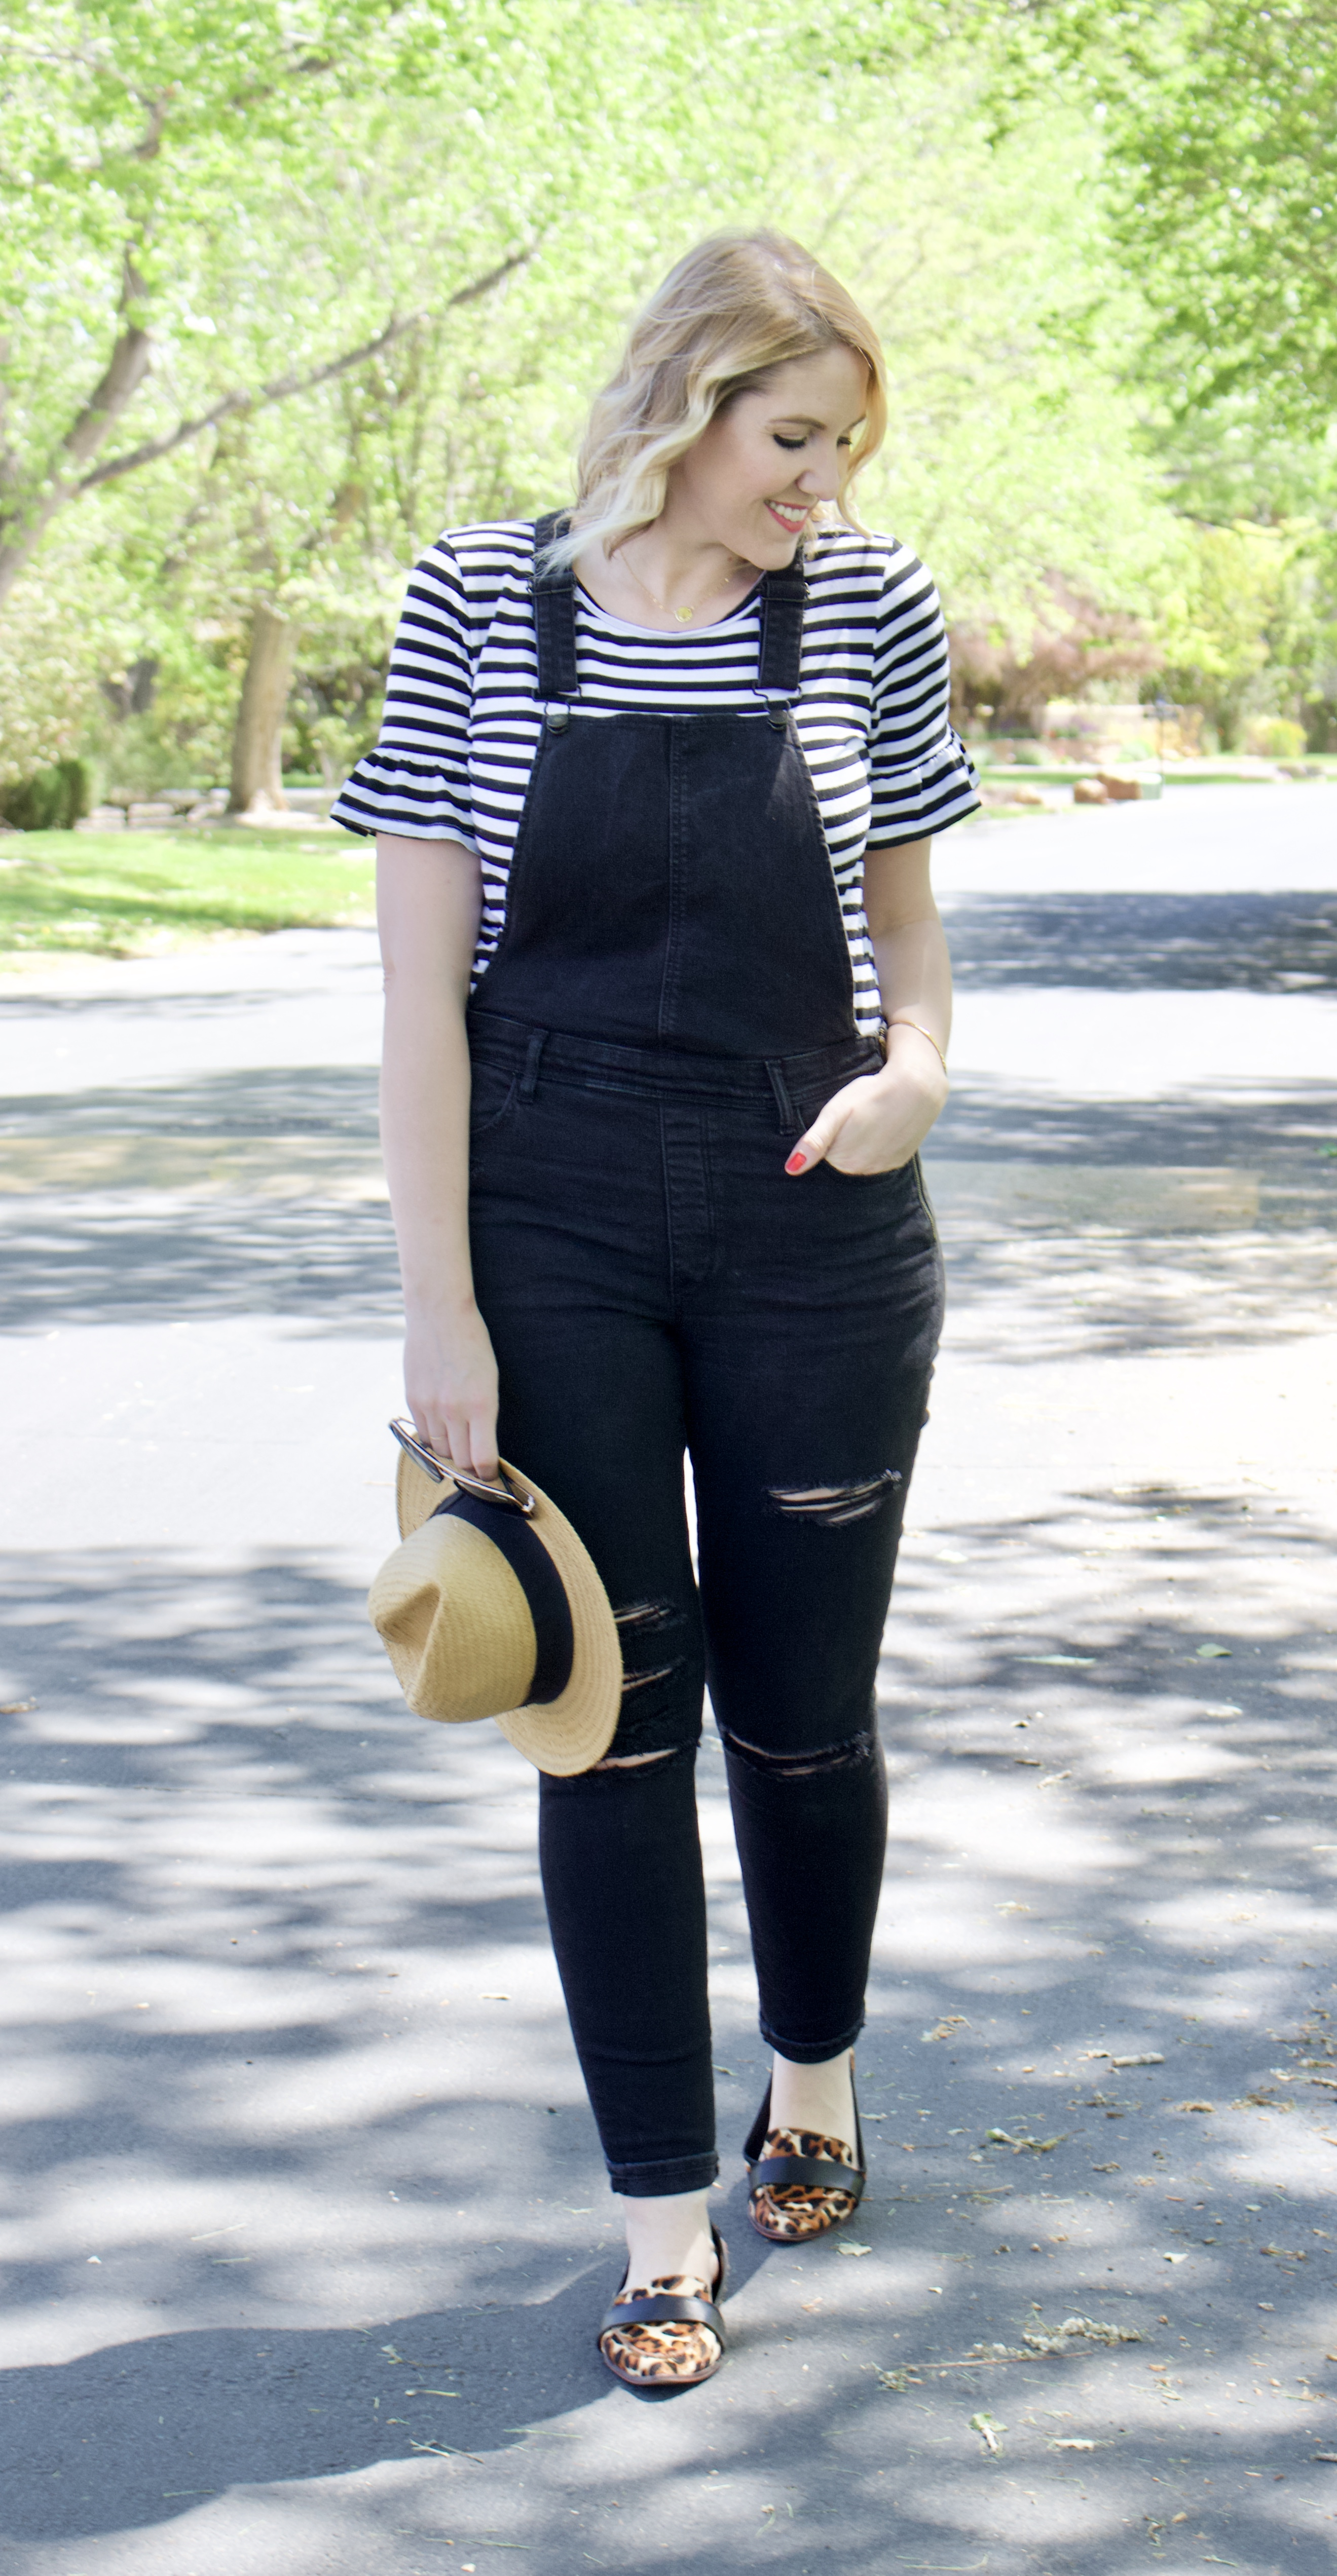 the weekly style edit fashion link up overalls #overalls #linkup #fashionblogger #styleblogger